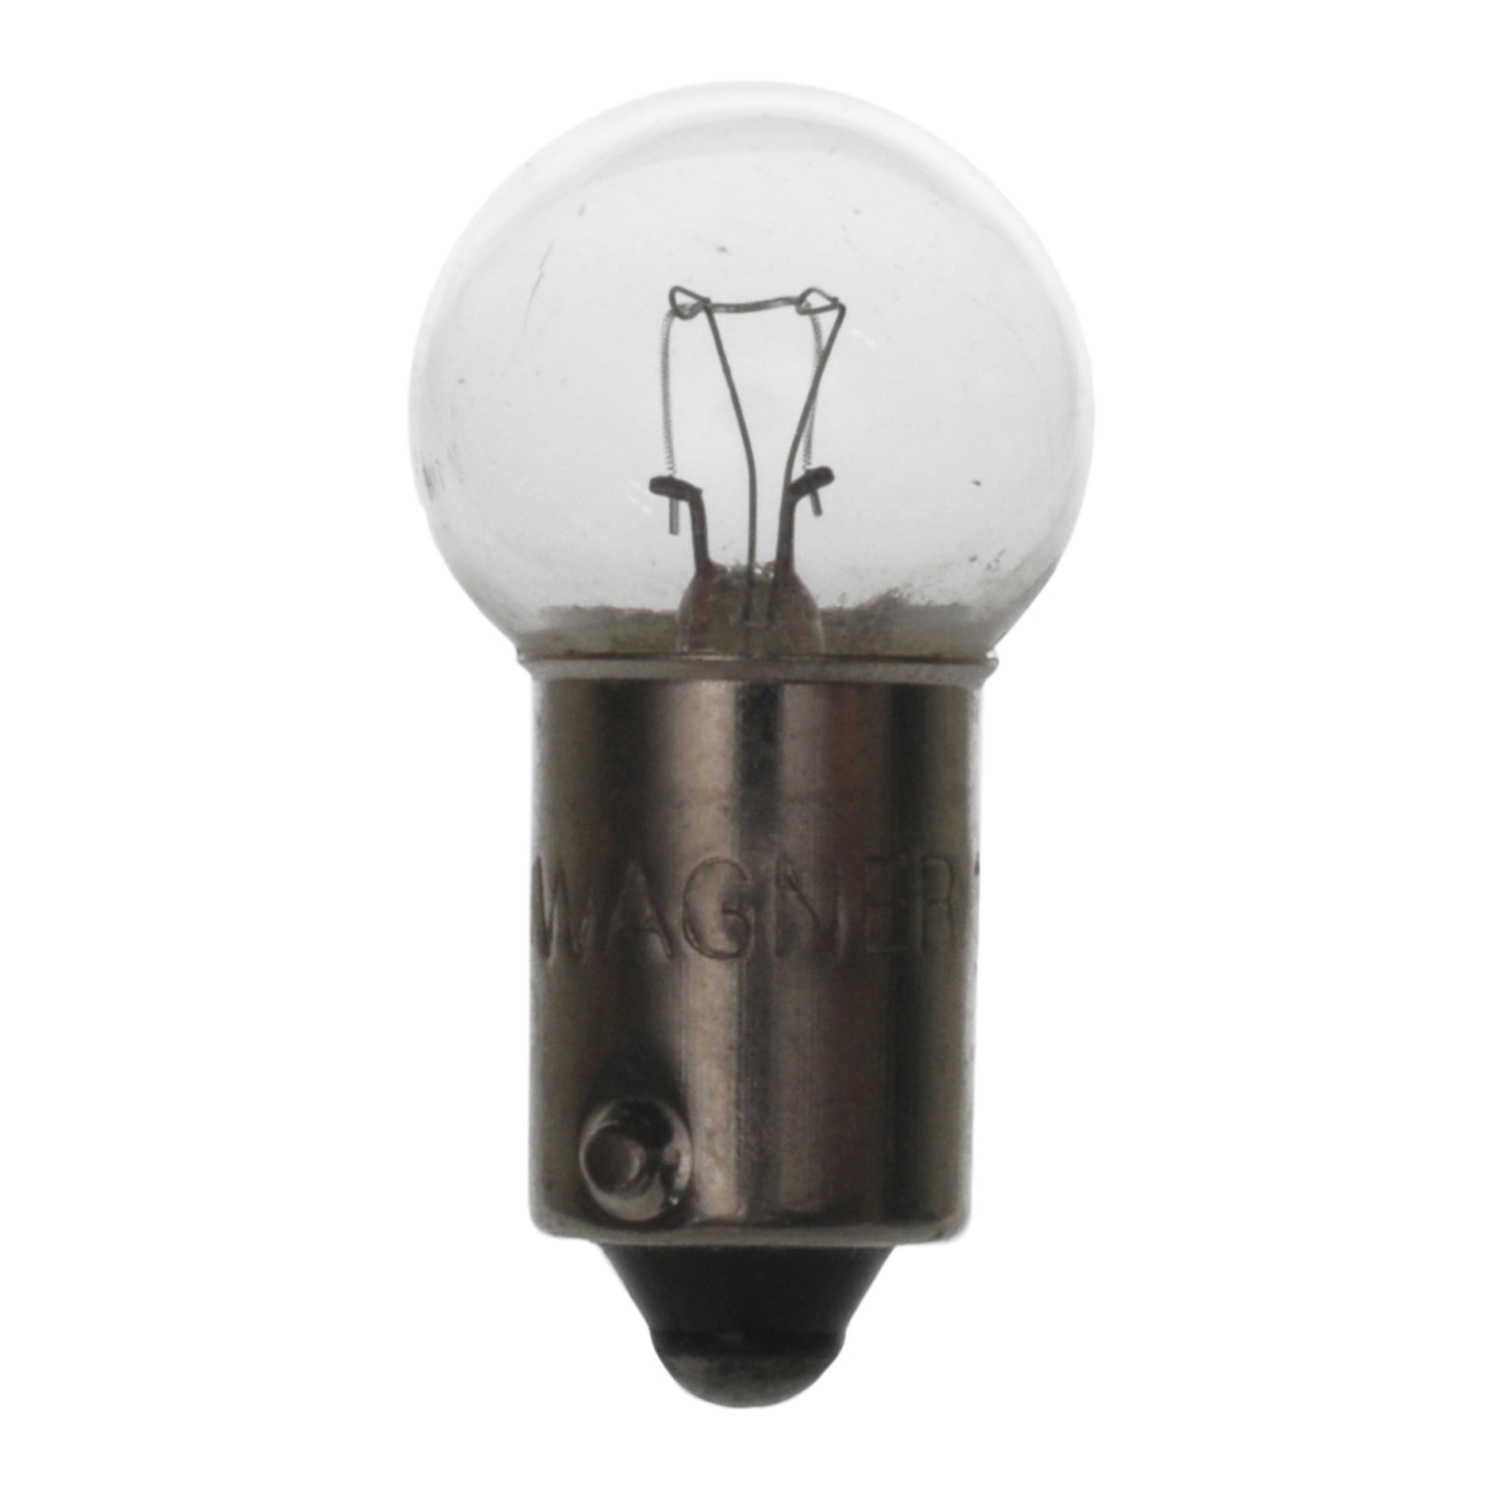 WAGNER LIGHTING - Instrument Panel Light Bulb - WLP 1895